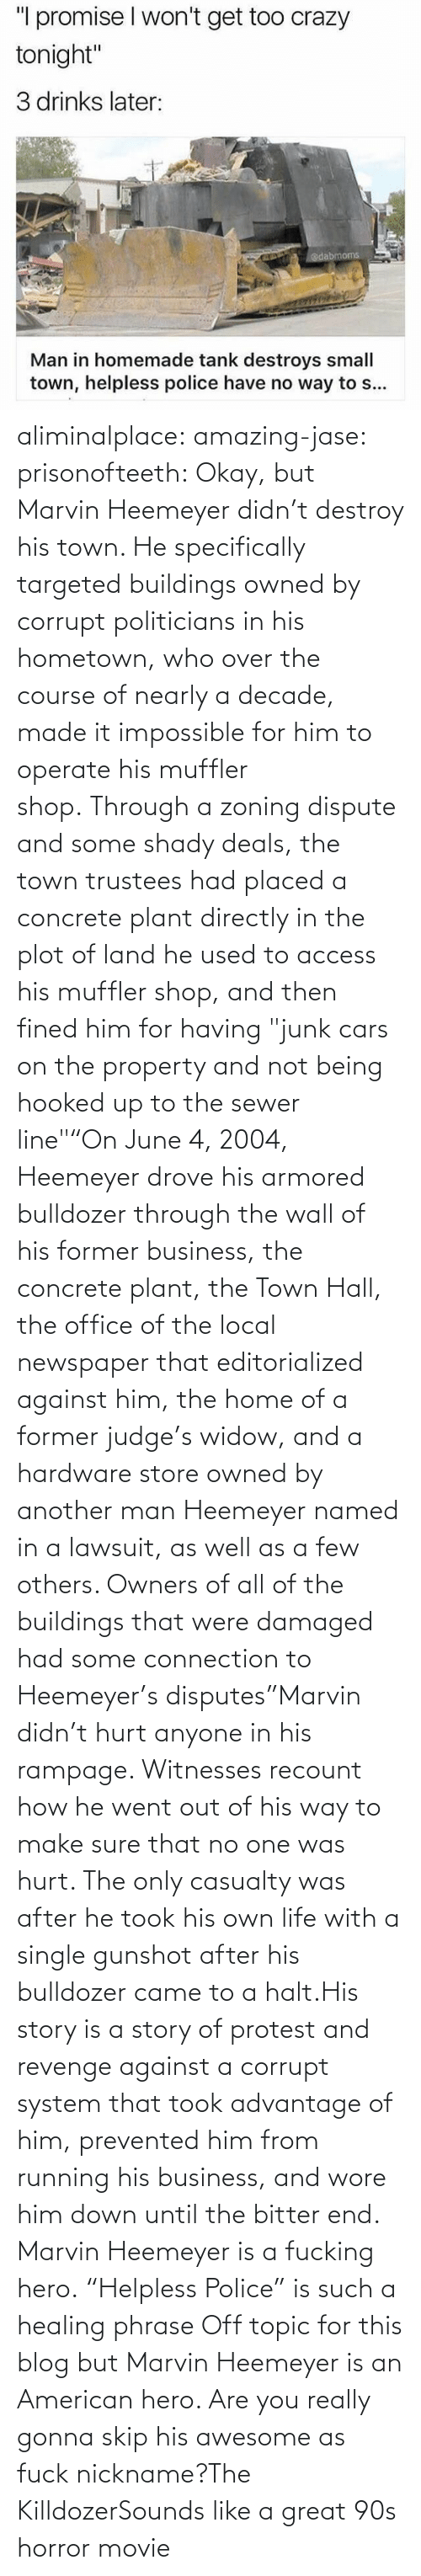 "system: aliminalplace: amazing-jase:  prisonofteeth: Okay, but Marvin Heemeyer didn't destroy his town. He specifically targeted buildings owned by corrupt politicians in his hometown, who over the course of nearly a decade, made it impossible for him to operate his muffler shop. Through a zoning dispute and some shady deals, the town trustees had placed a concrete plant directly in the plot of land he used to access his muffler shop, and then fined him for having ""junk cars on the property and not being hooked up to the sewer line""""On June 4, 2004, Heemeyer drove his armored bulldozer through the wall of his former business, the concrete plant, the Town Hall, the office of the local newspaper that editorialized against him, the home of a former judge's widow, and a hardware store owned by another man Heemeyer named in a lawsuit, as well as a few others. Owners of all of the buildings that were damaged had some connection to Heemeyer's disputes""Marvin didn't hurt anyone in his rampage. Witnesses recount how he went out of his way to make sure that no one was hurt. The only casualty was after he took his own life with a single gunshot after his bulldozer came to a halt.His story is a story of protest and revenge against a corrupt system that took advantage of him, prevented him from running his business, and wore him down until the bitter end. Marvin Heemeyer is a fucking hero. ""Helpless Police"" is such a healing phrase    Off topic for this blog but Marvin Heemeyer is an American hero.     Are you really gonna skip his awesome as fuck nickname?The KilldozerSounds like a great 90s horror movie"